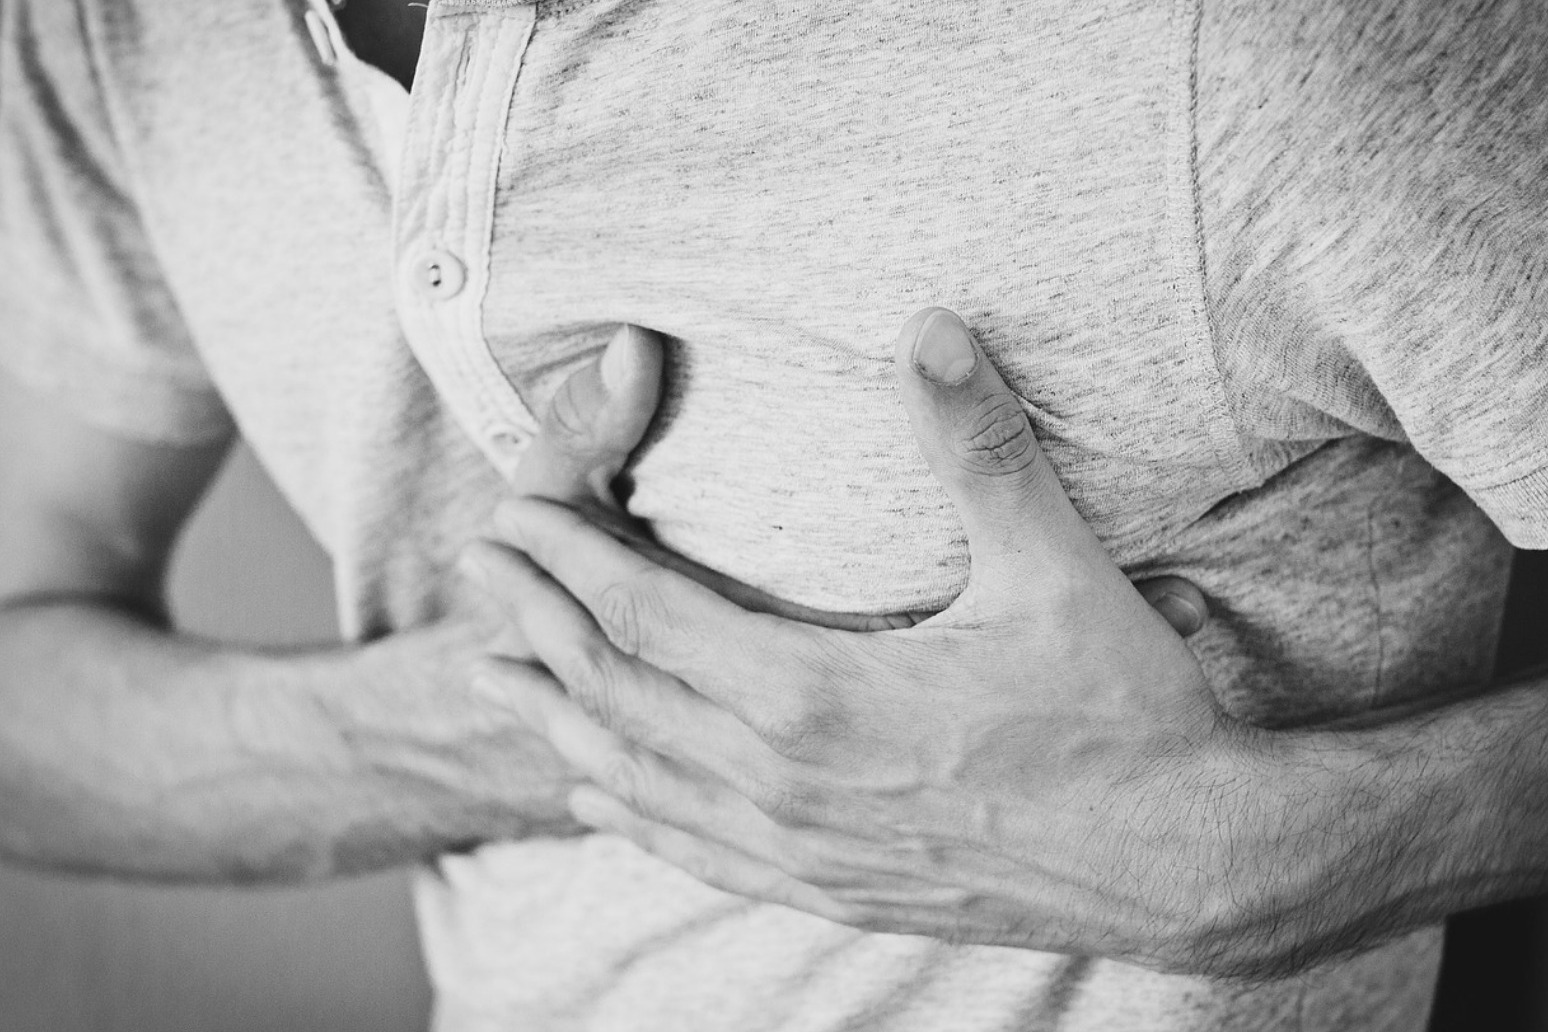 NHS England encourages adults to take a heart test